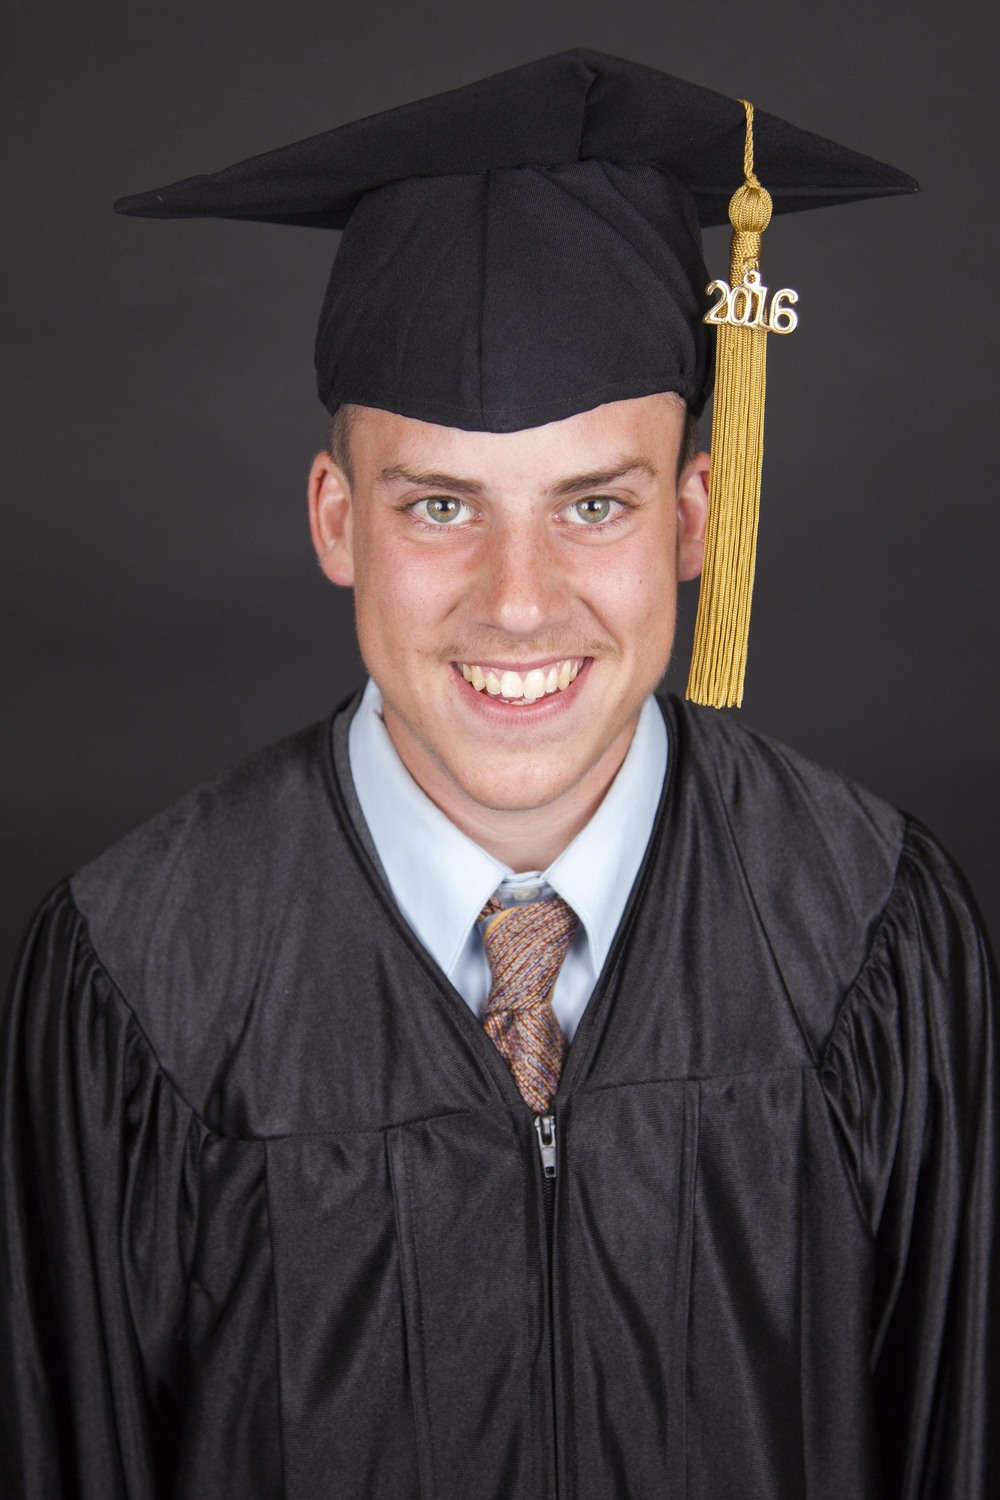 16_2016_Cap&Gown_(photo_credit_Christina_Simons).jpg